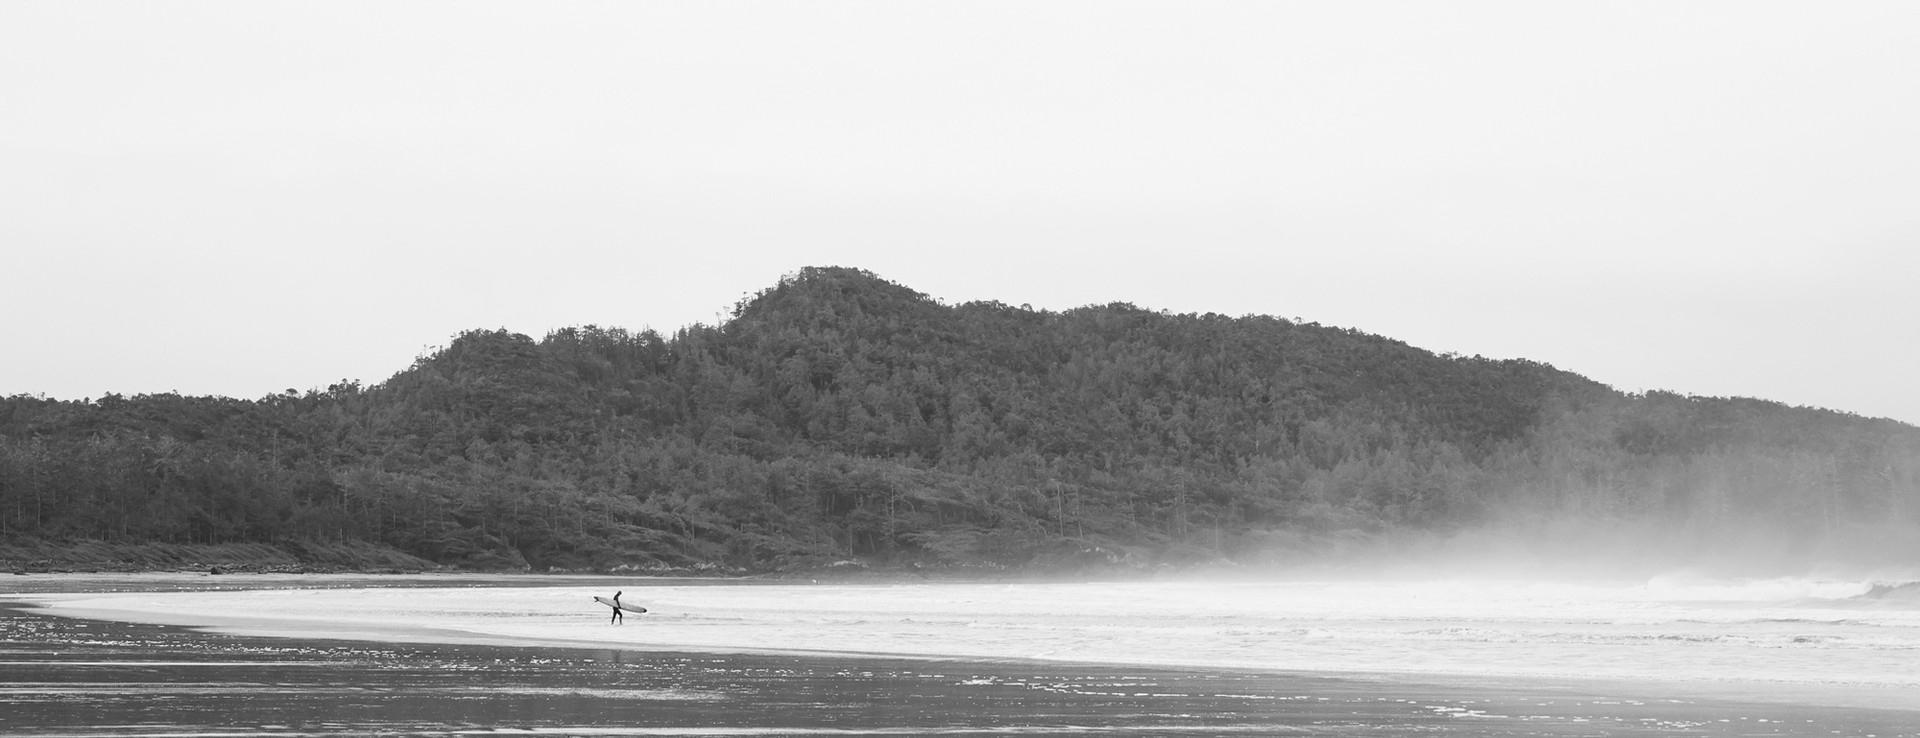 Surfing Dreams Ucluelet British Columbia